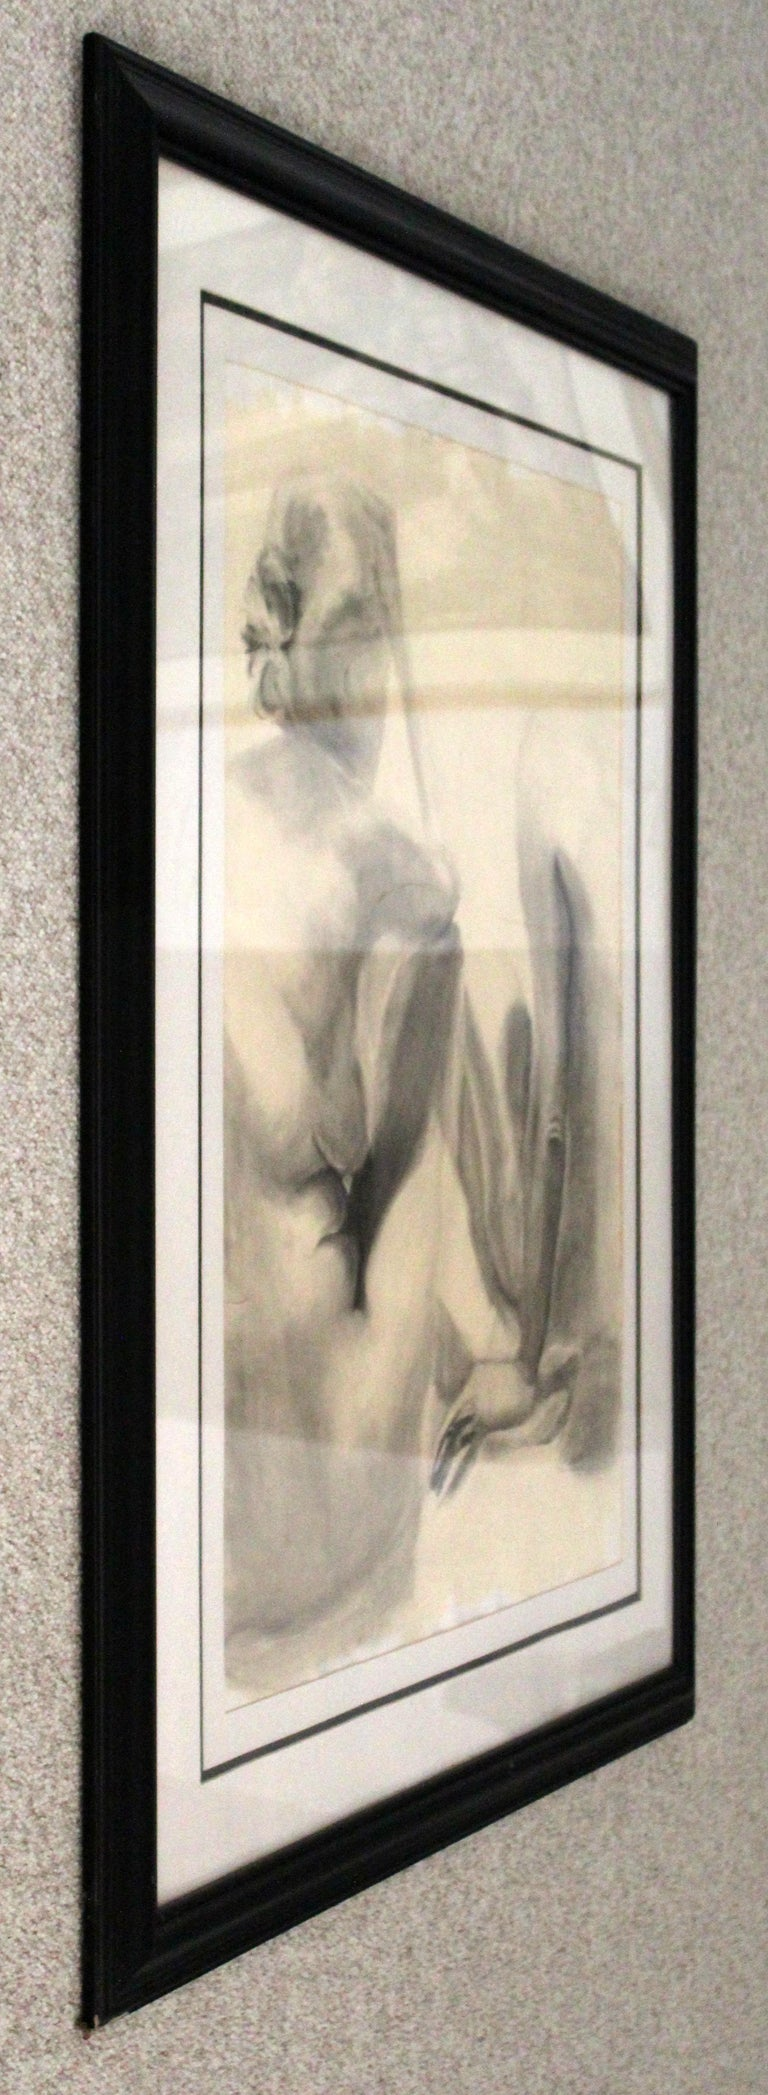 20th Century Contemporary Modern Framed Charcoal Drawing Signed Drewe Nude Figure Drawing For Sale